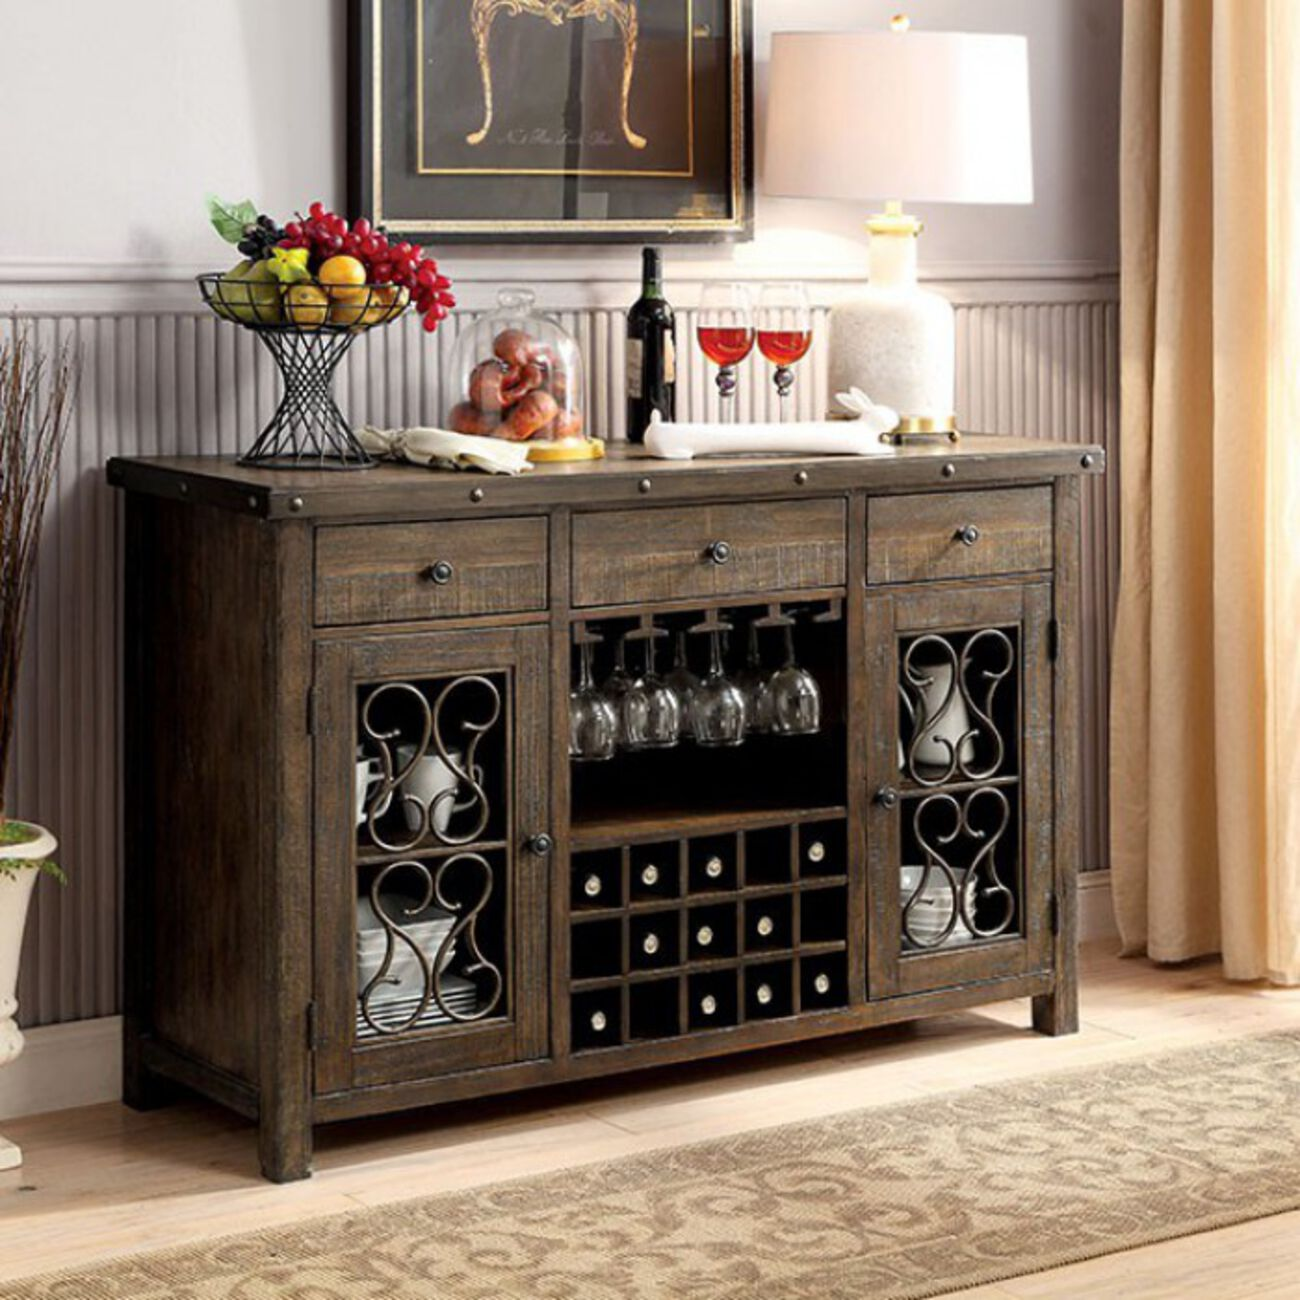 Wooden Server with Wine Holder, Brown